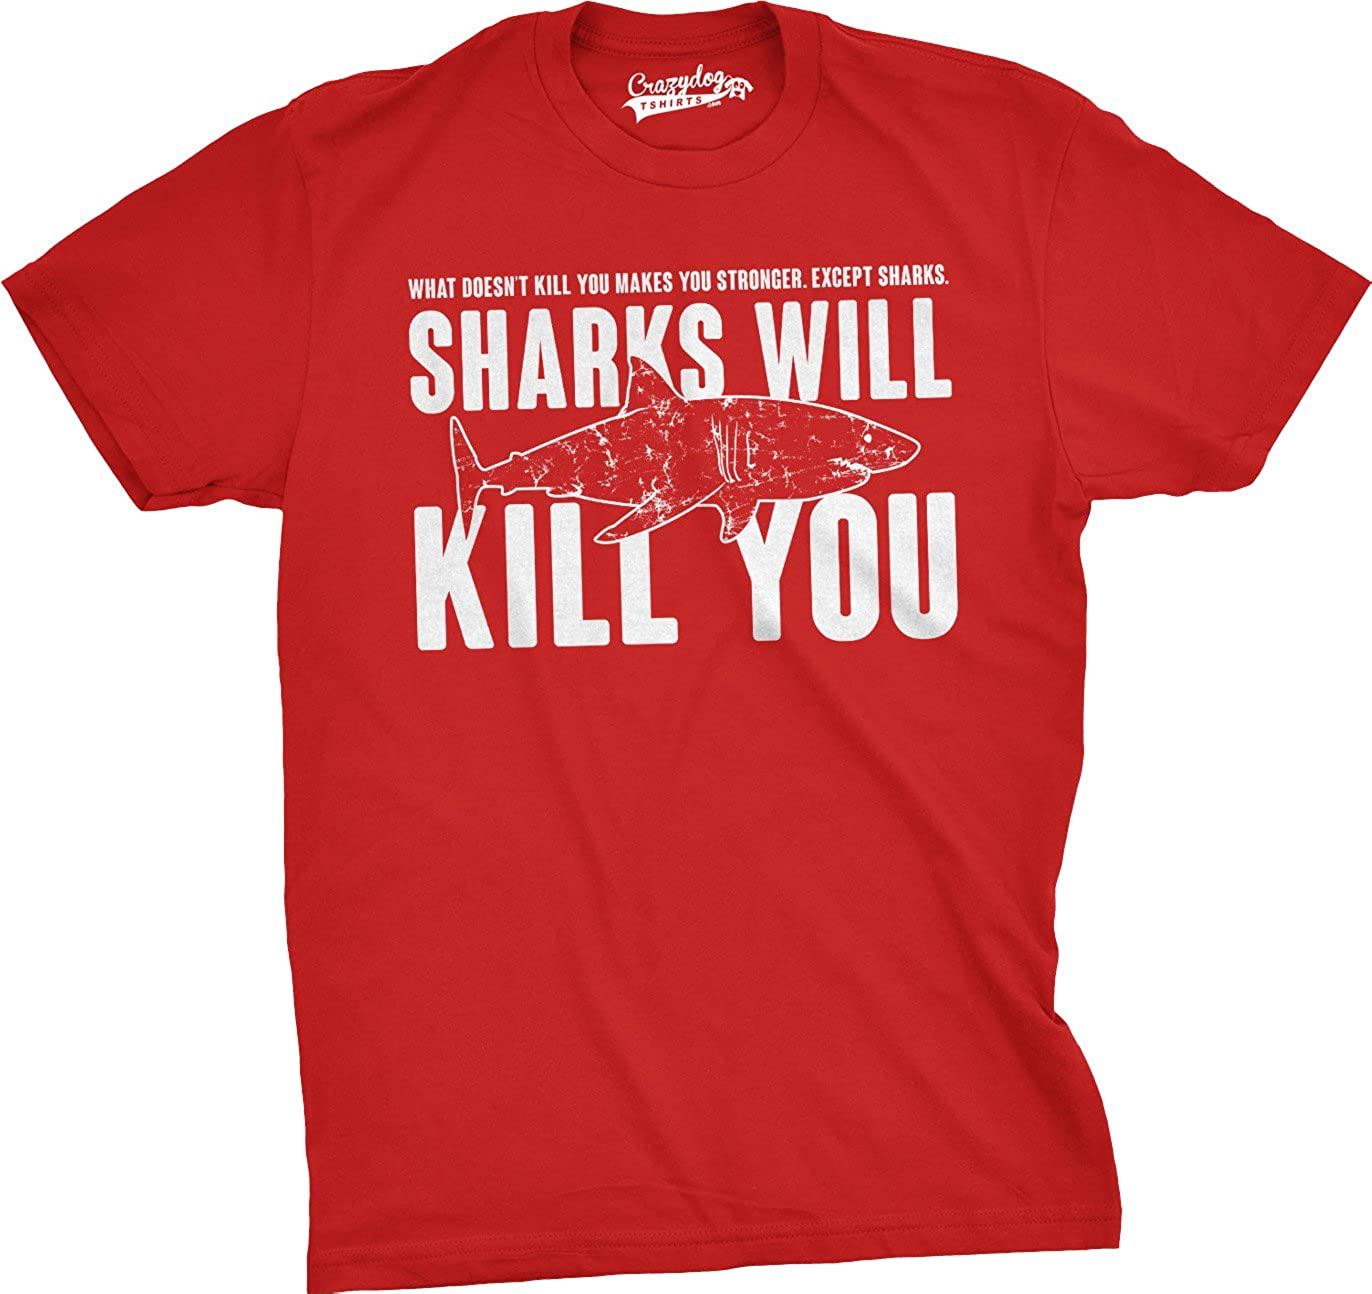 718fb635a Amazon.com: Mens Sharks Will Kill You Funny T Shirt Sarcasm Novelty  Offensive Tee for Guys: Clothing